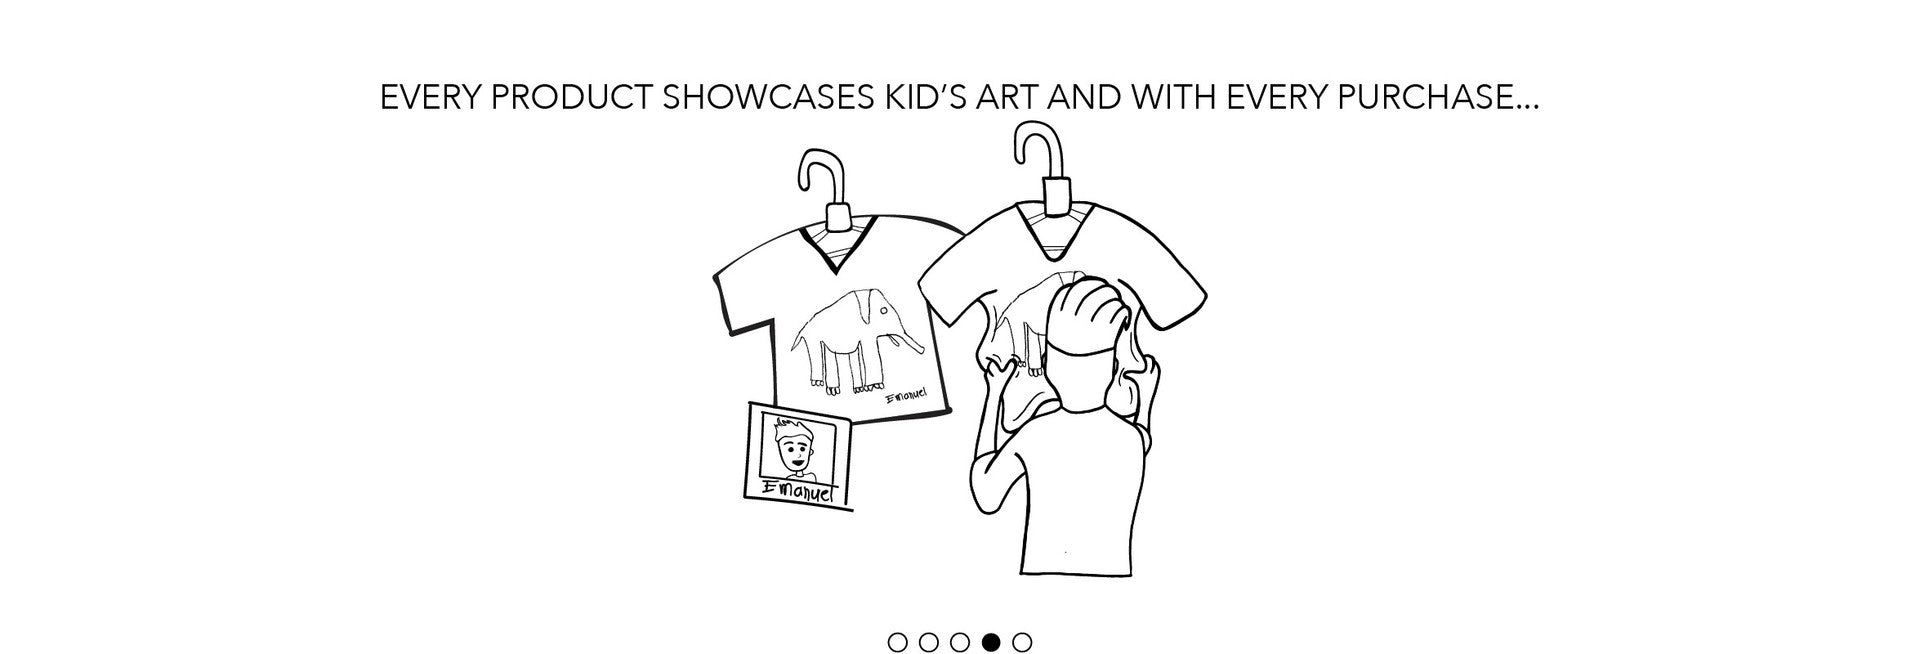 every product showcases kid's art, and with every purchase...